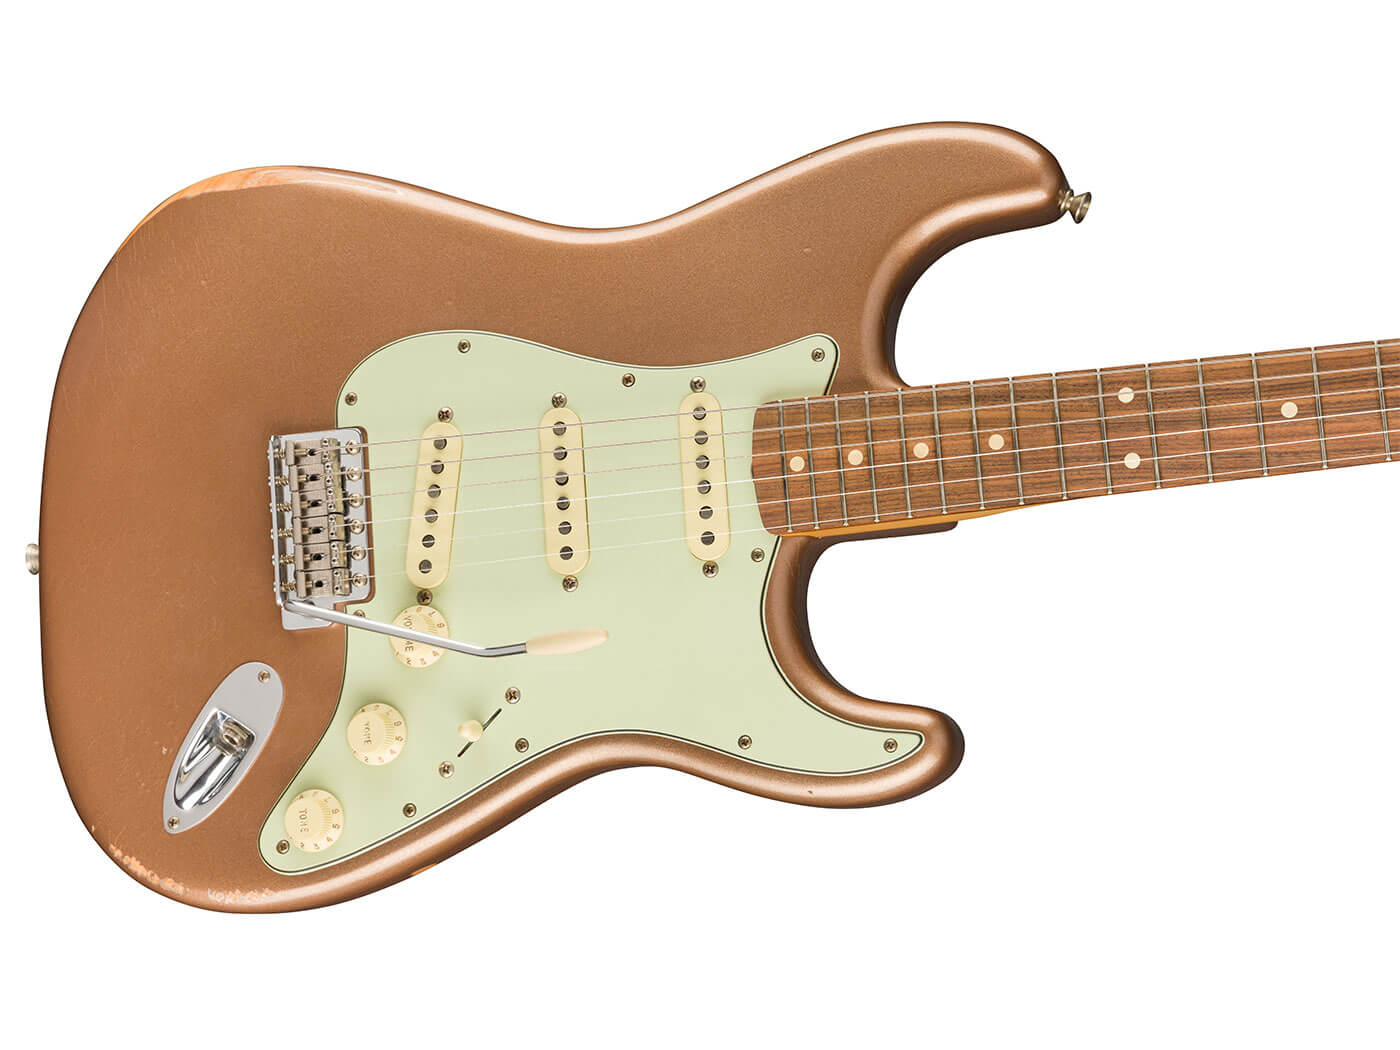 The '60s Strat in Firemist Red.